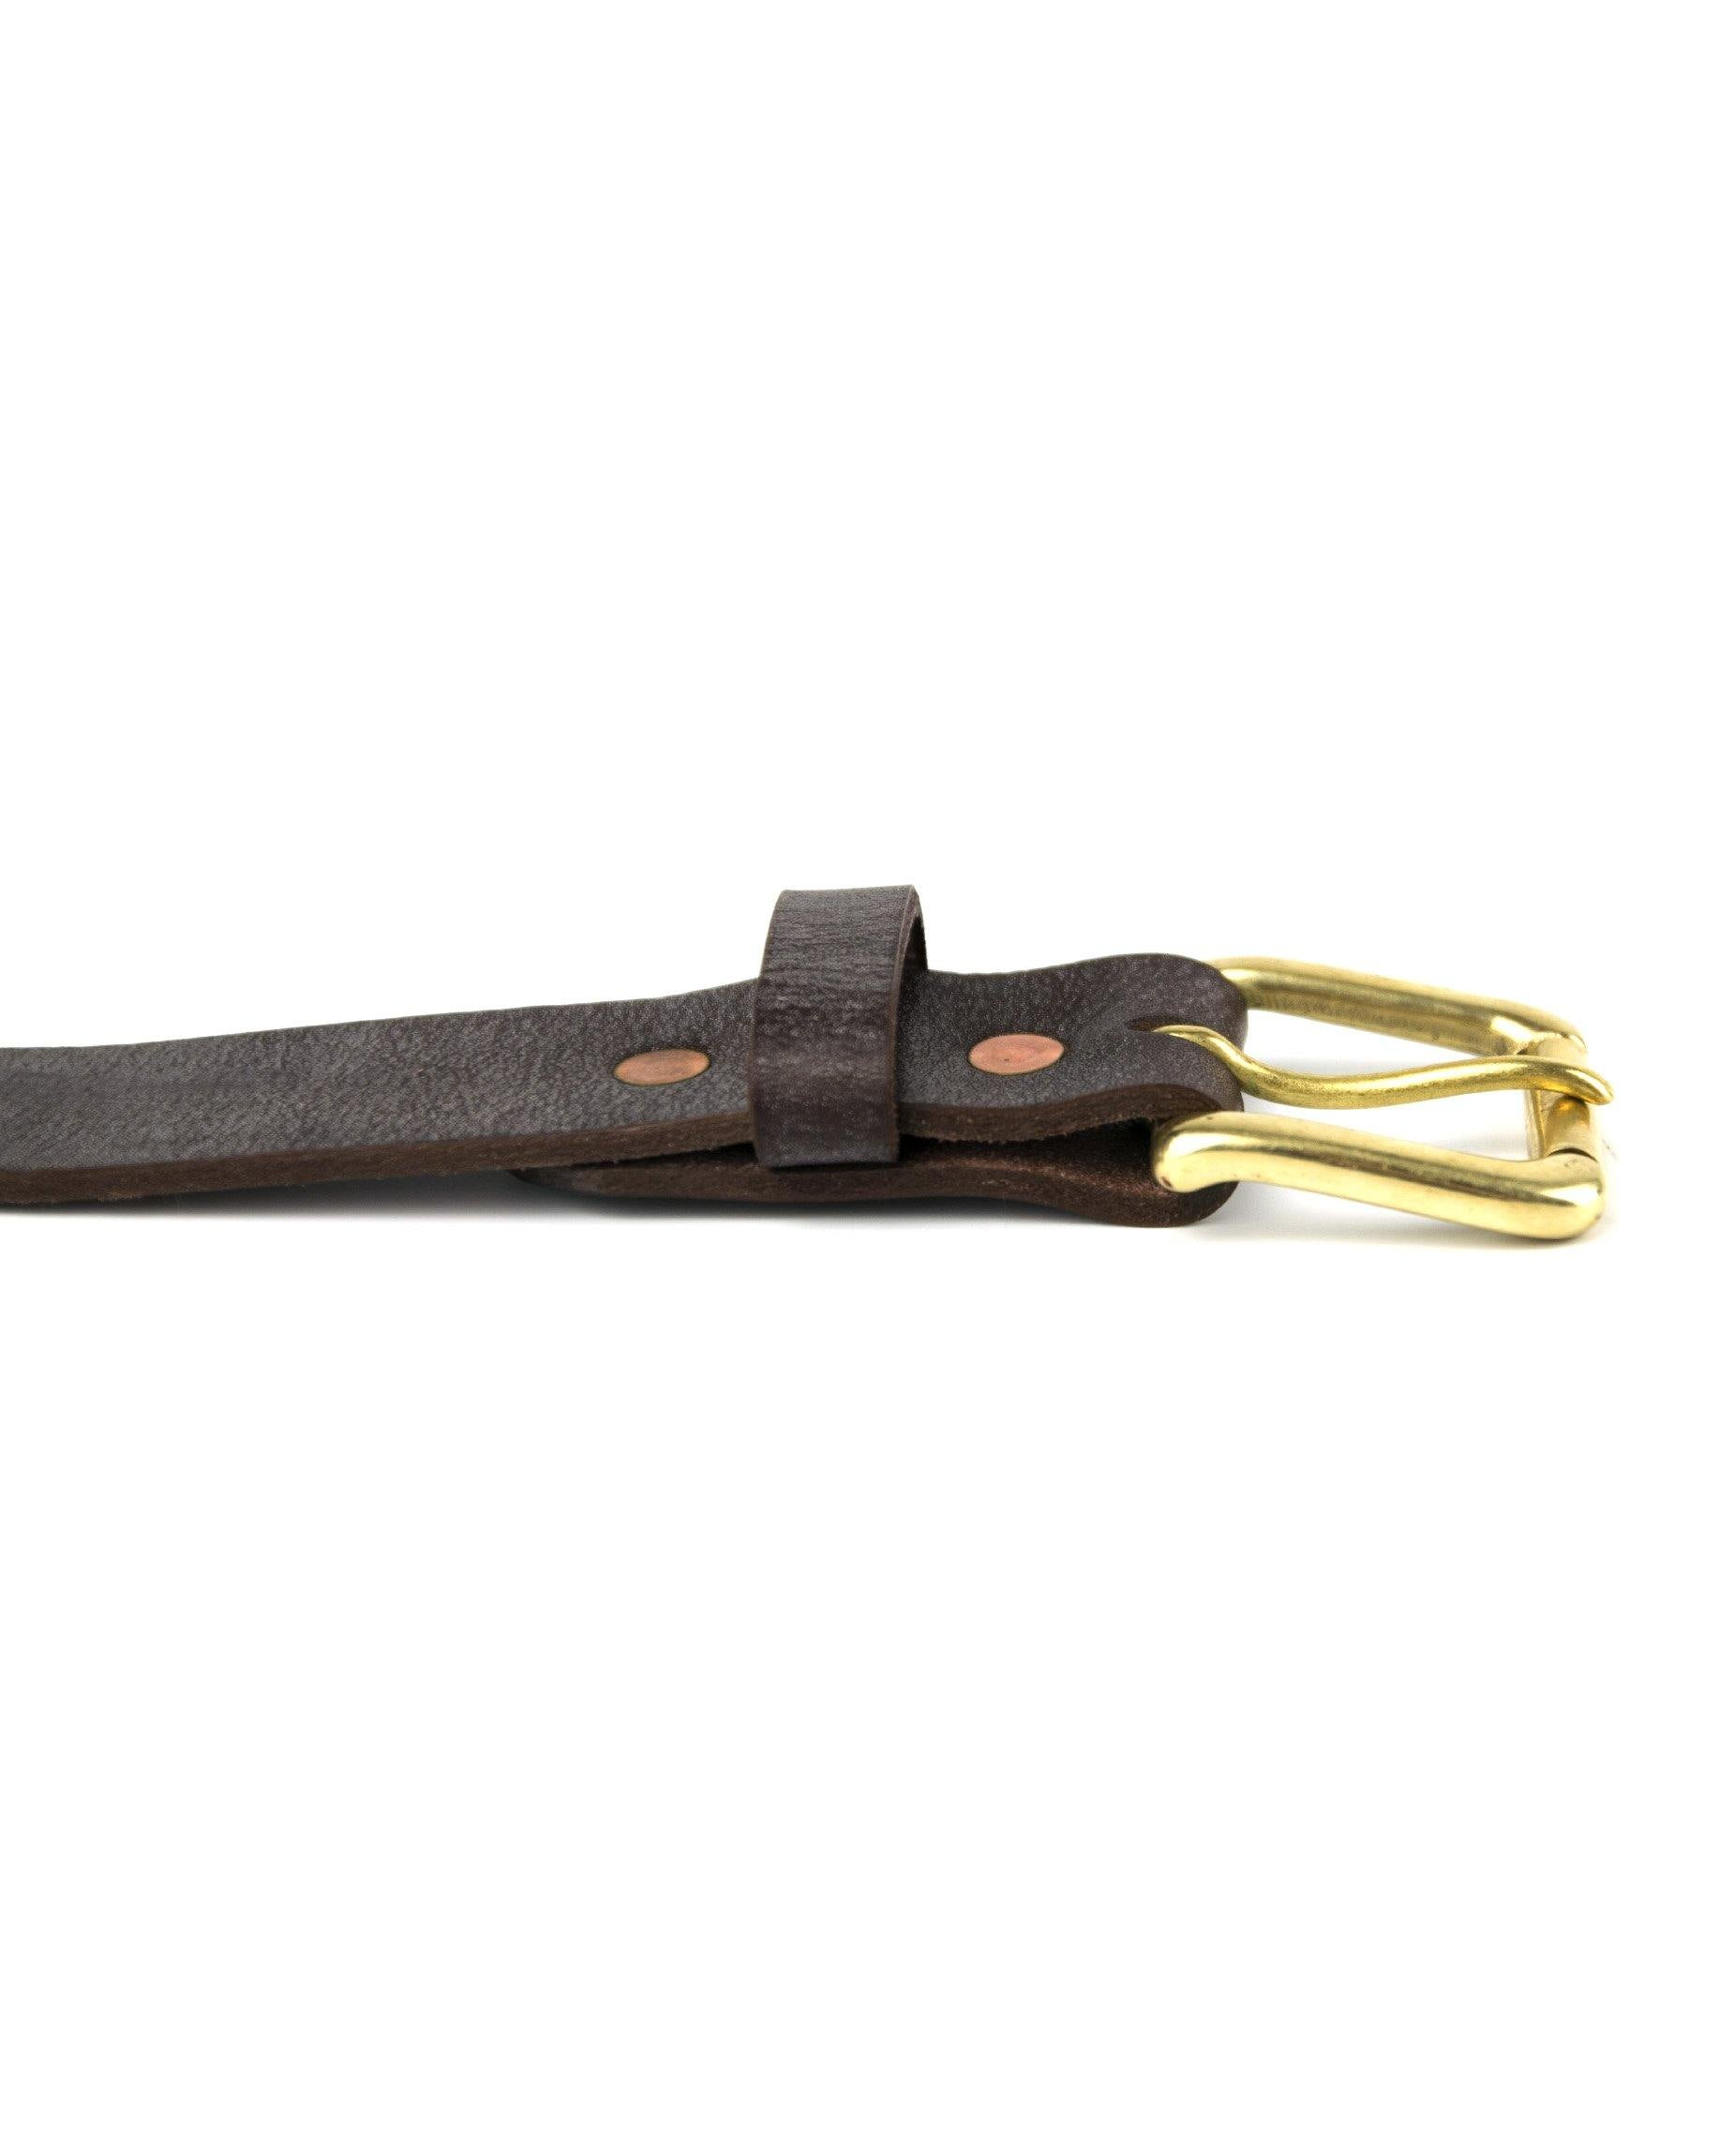 Waterloo Belt - Brown - Debonair